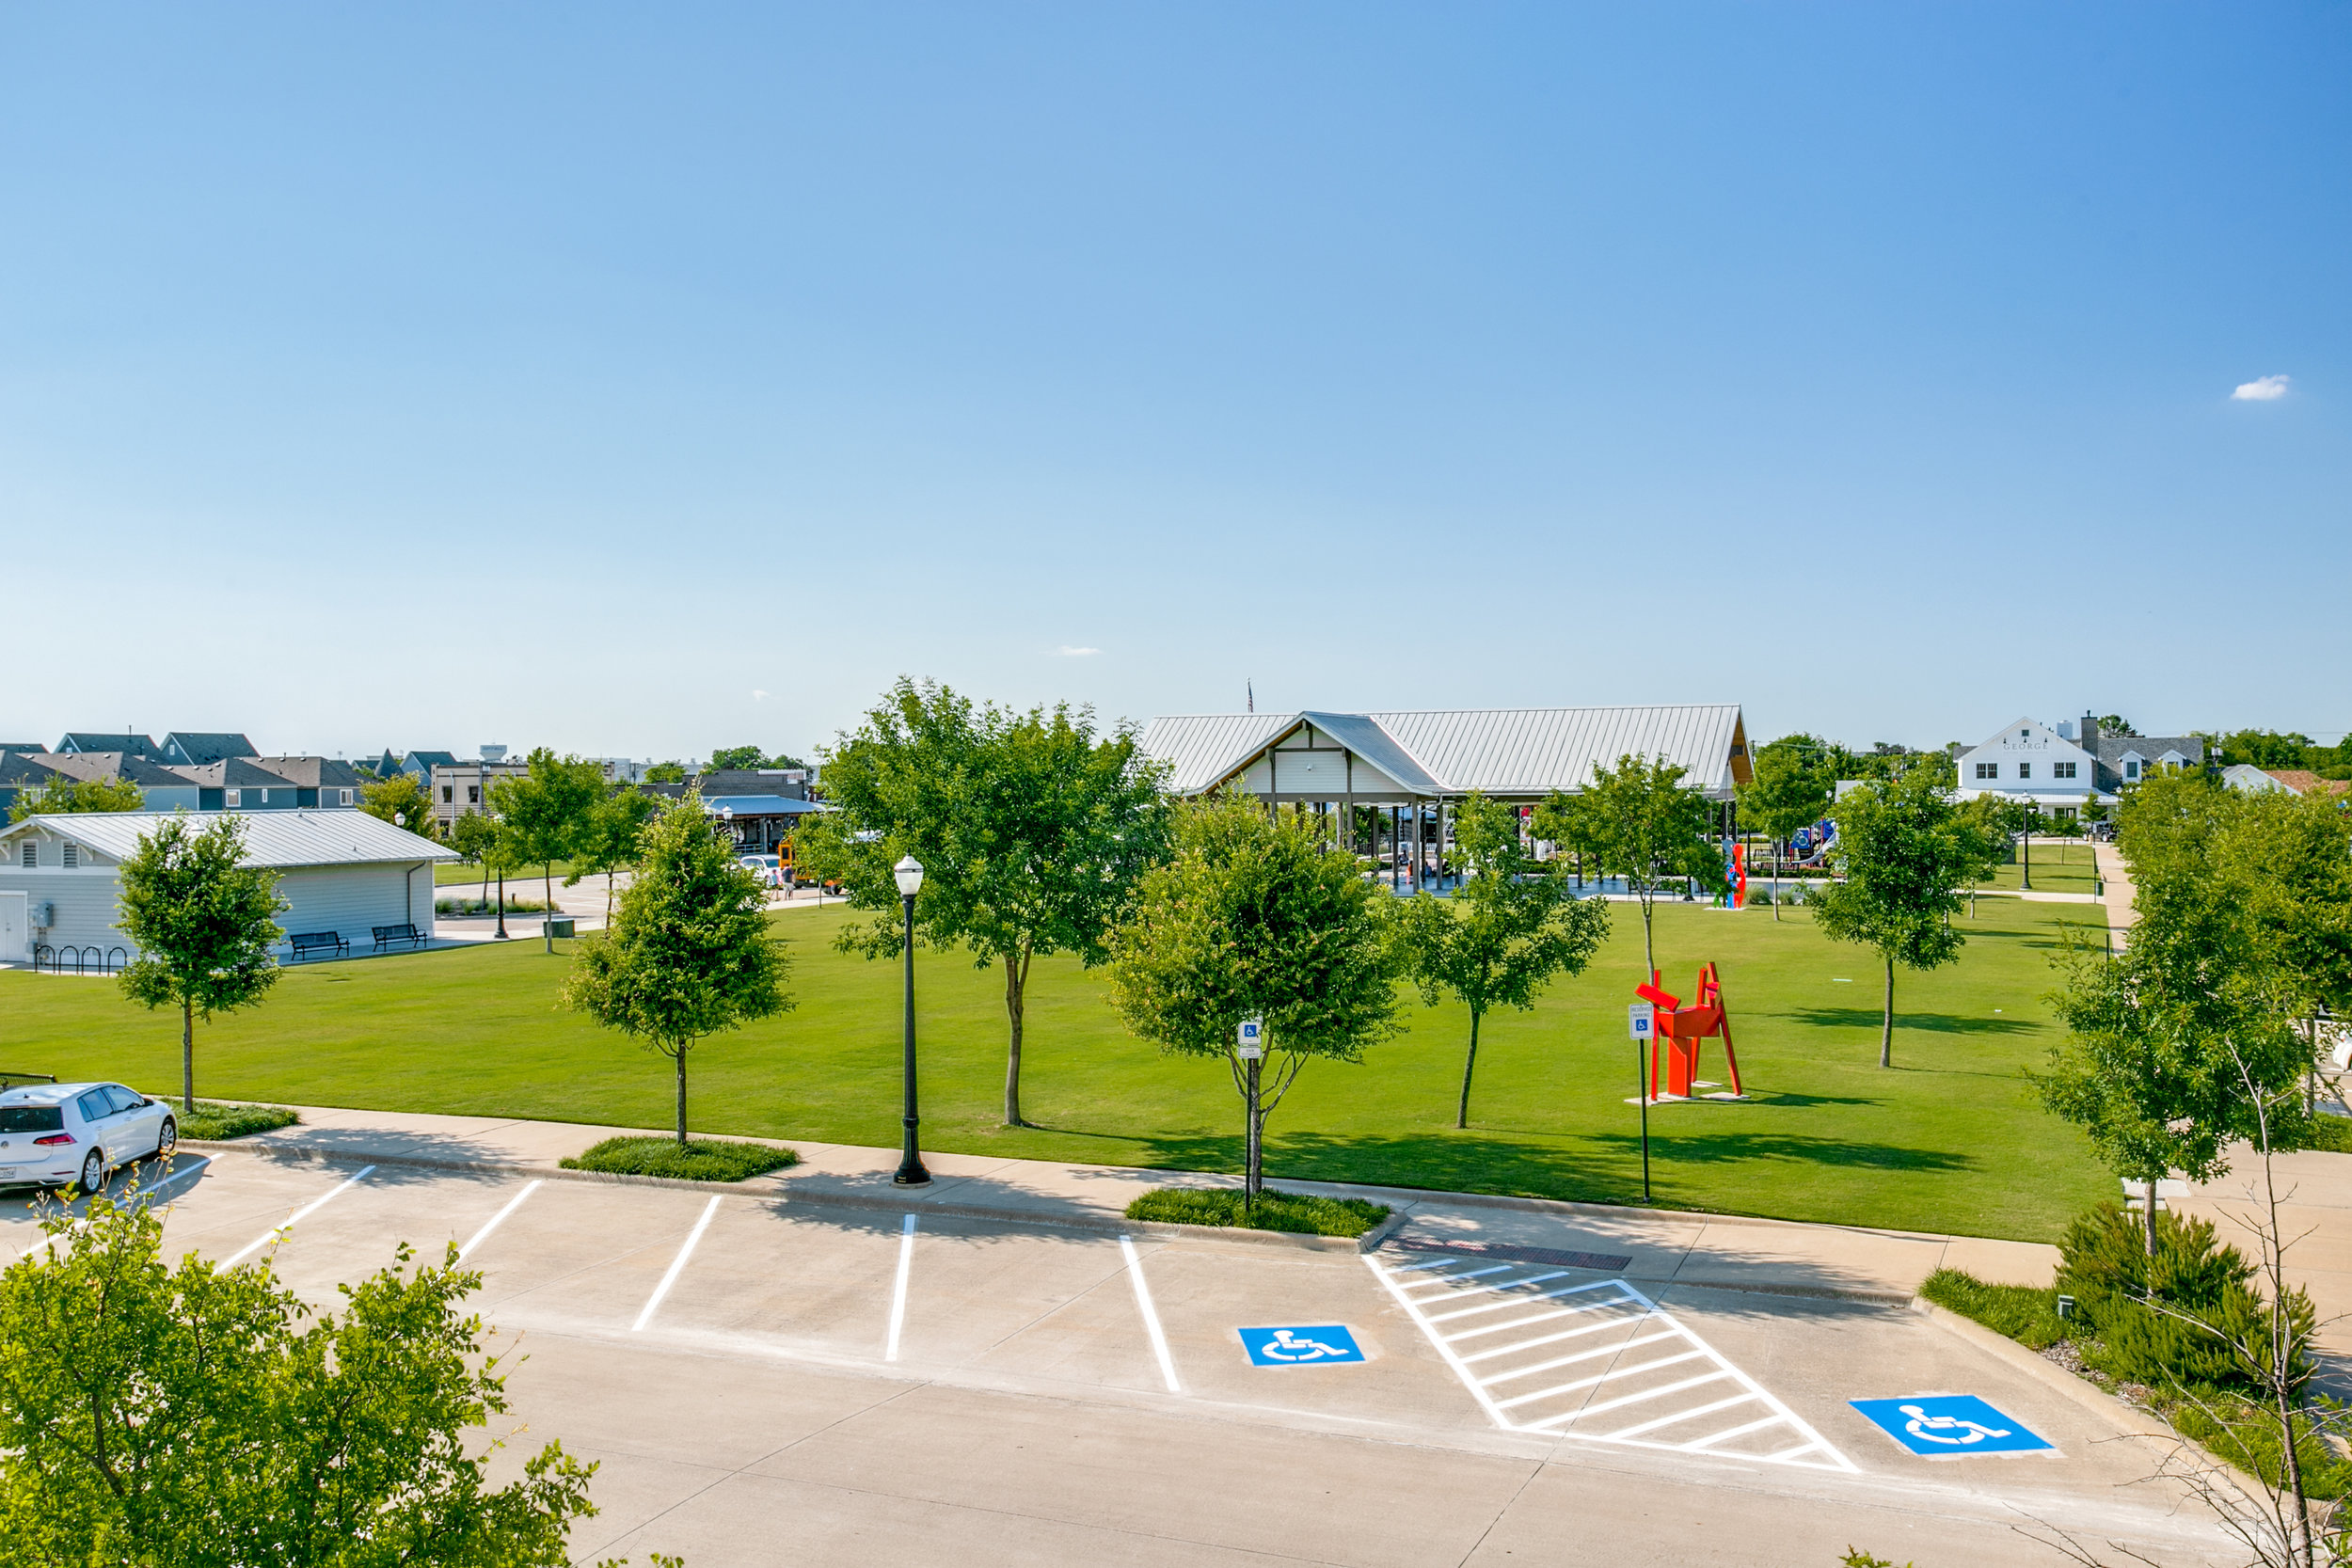 465-travis-st-coppell-tx-High-Res-31.jpg